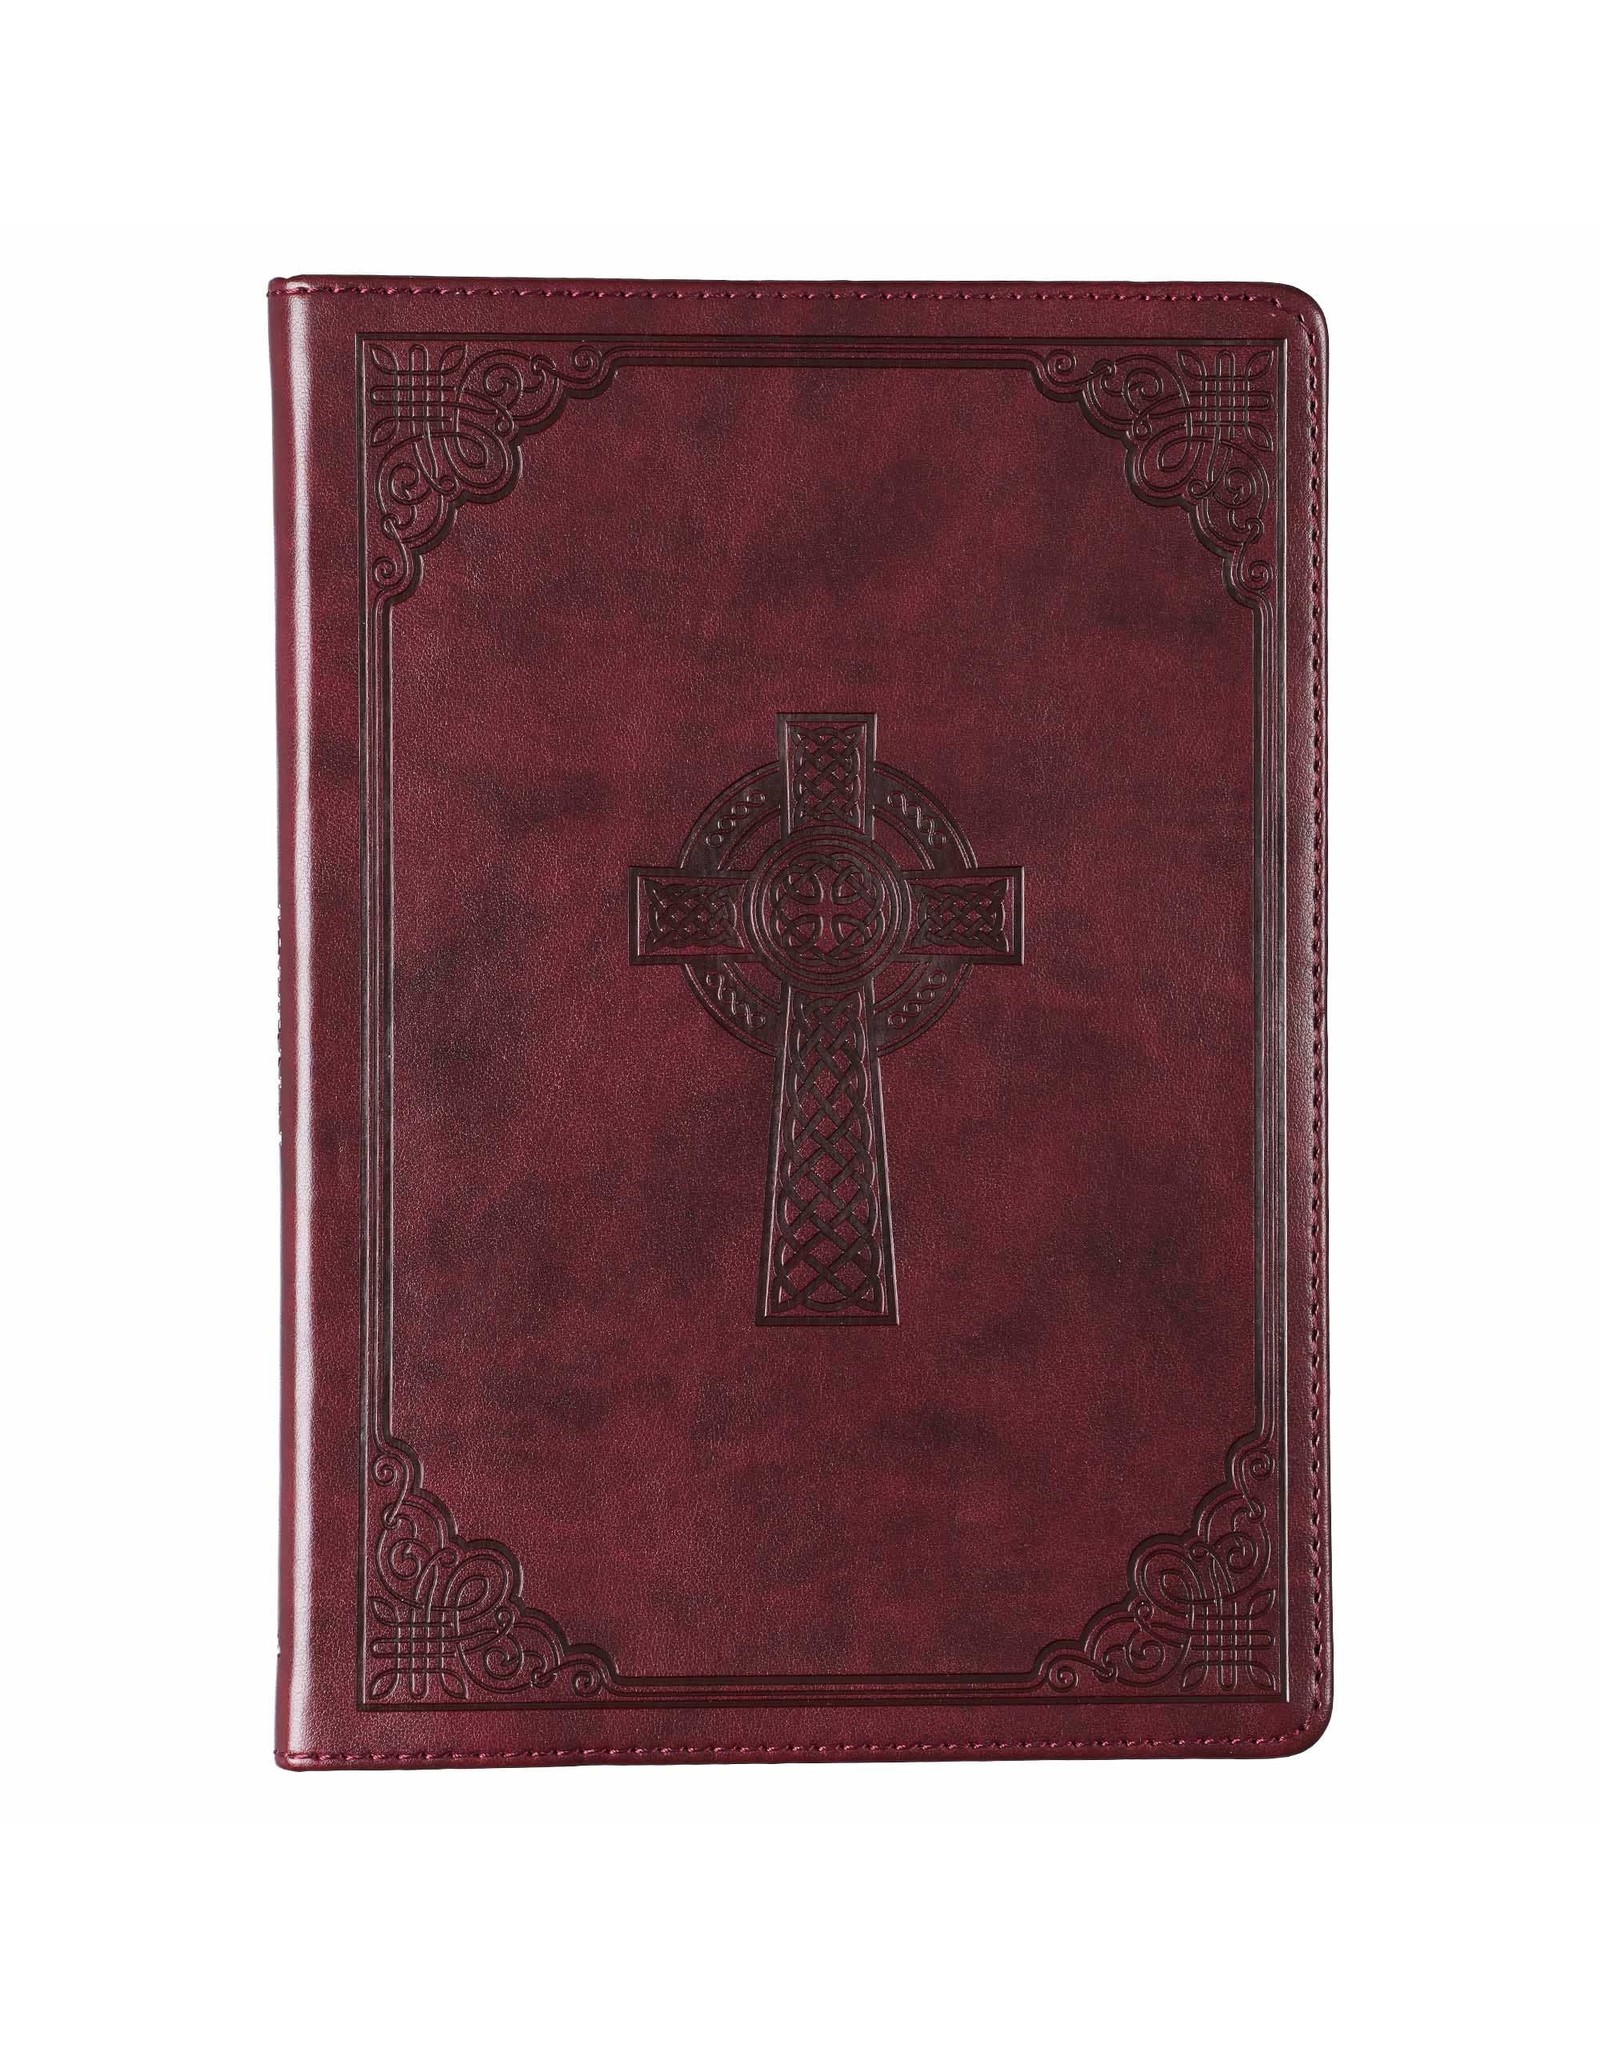 Christian Art Gifts Brown Slimline Faux Leather Journal with Celtic Cross